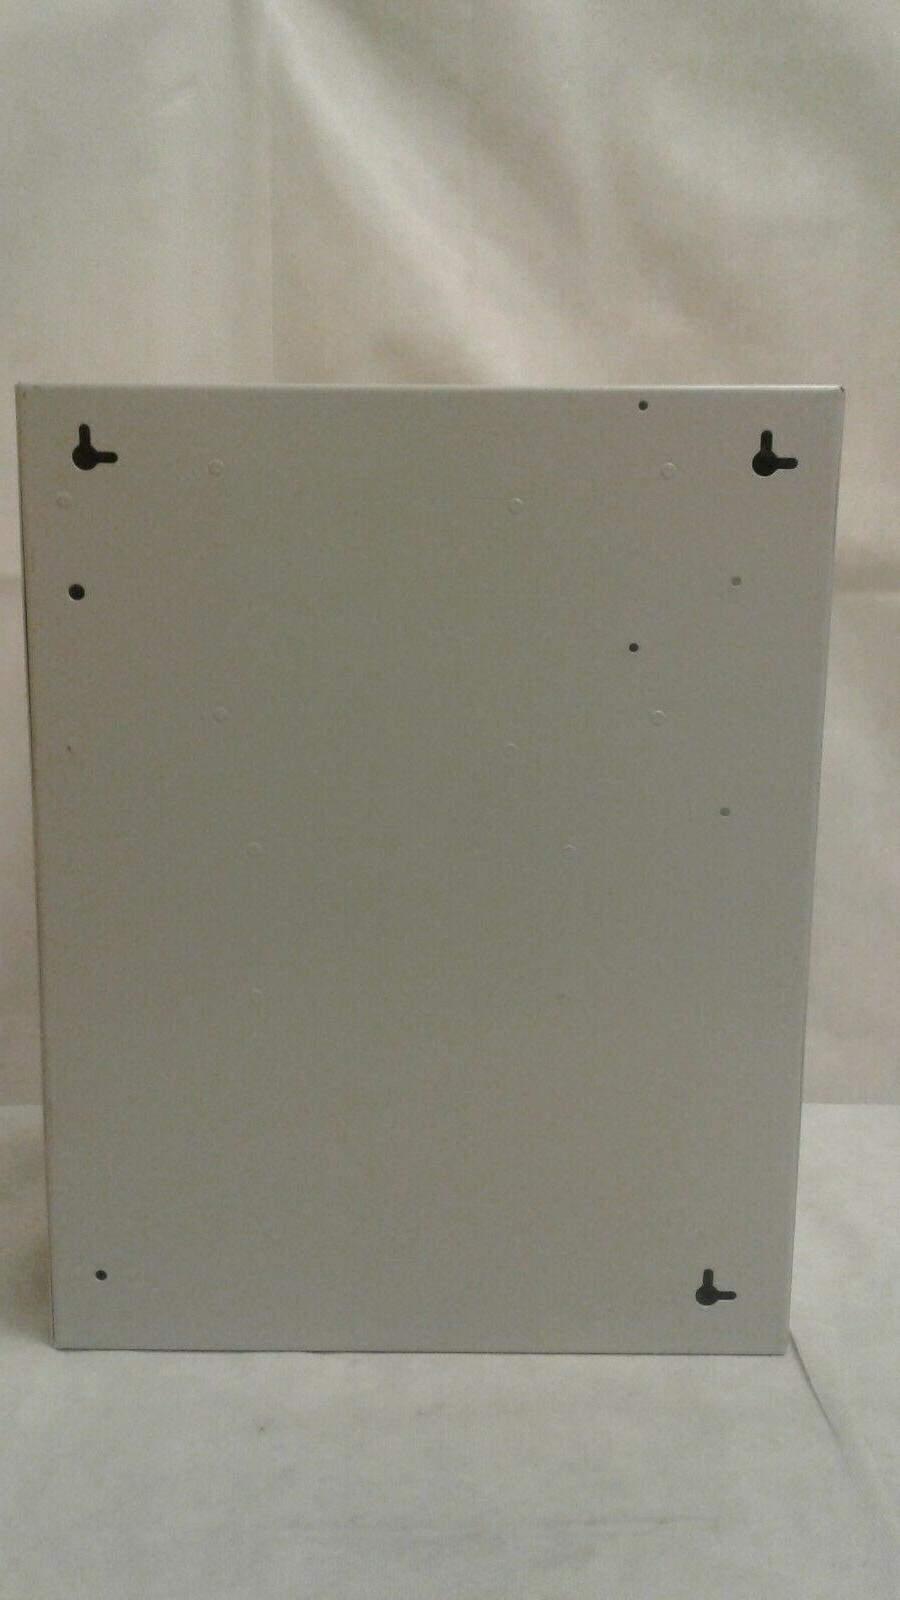 Altronix - Alarm System Supply Panel - ONLY